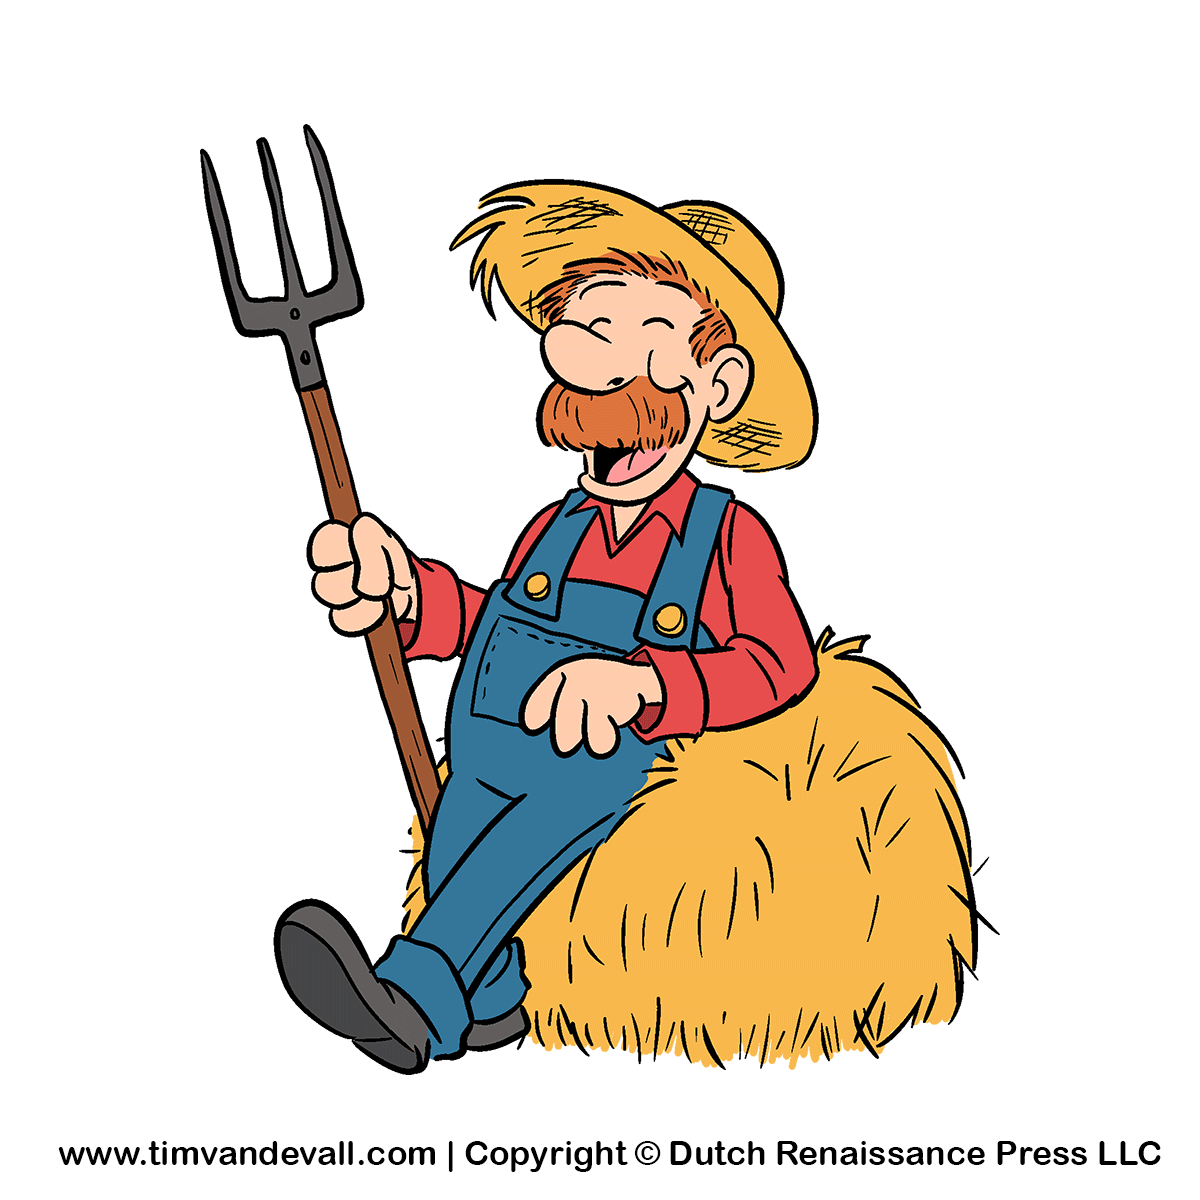 jpg Farmer clipart. For kids free images